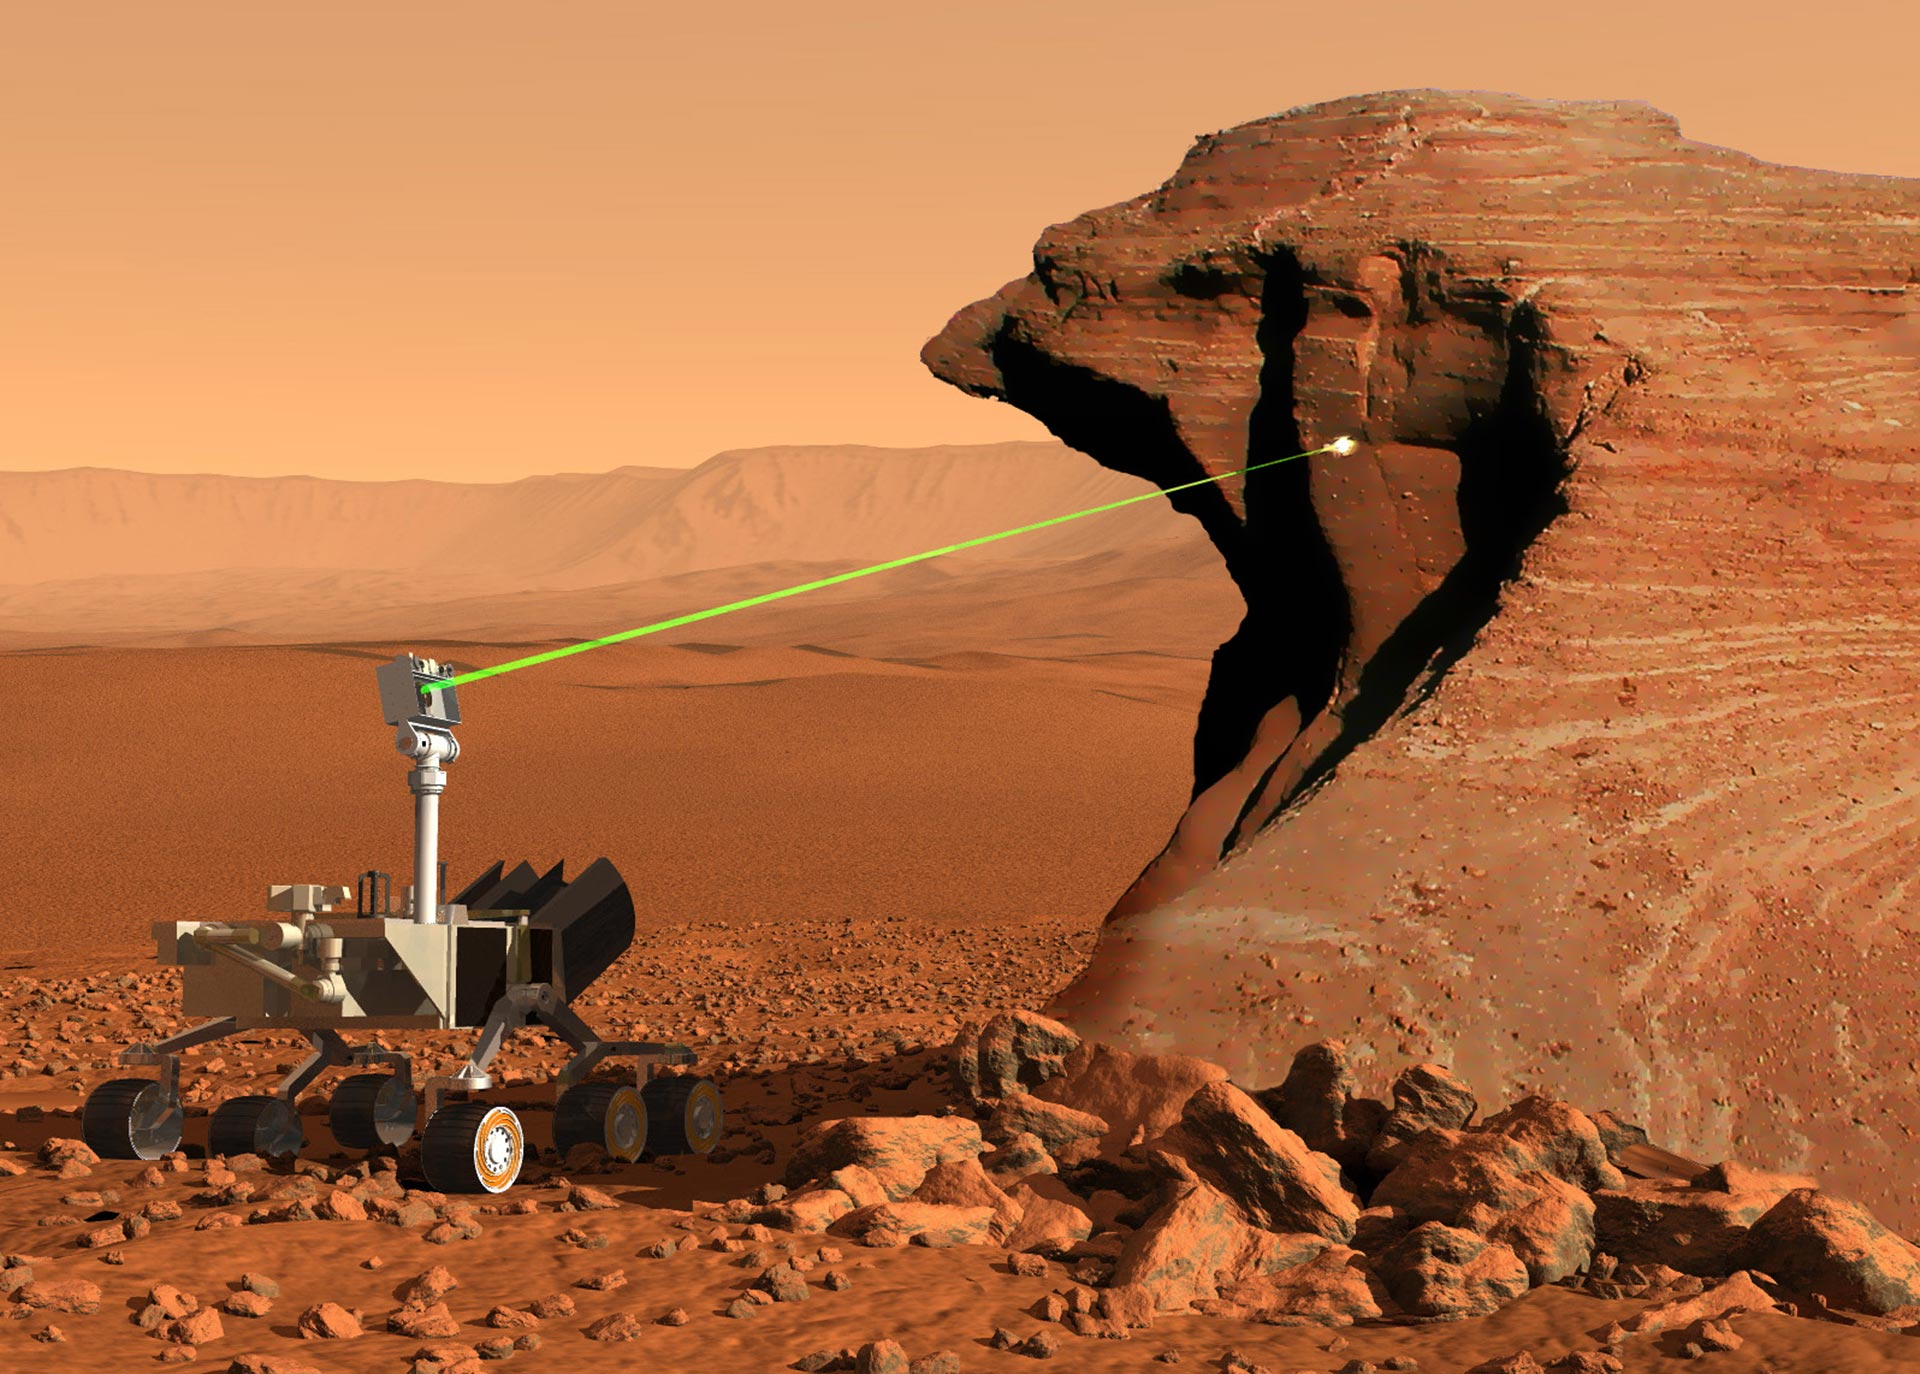 Curiosity rover (space rover with six wheels and a laser head) on a red rocky landscape. The laser is pointing a big rock.